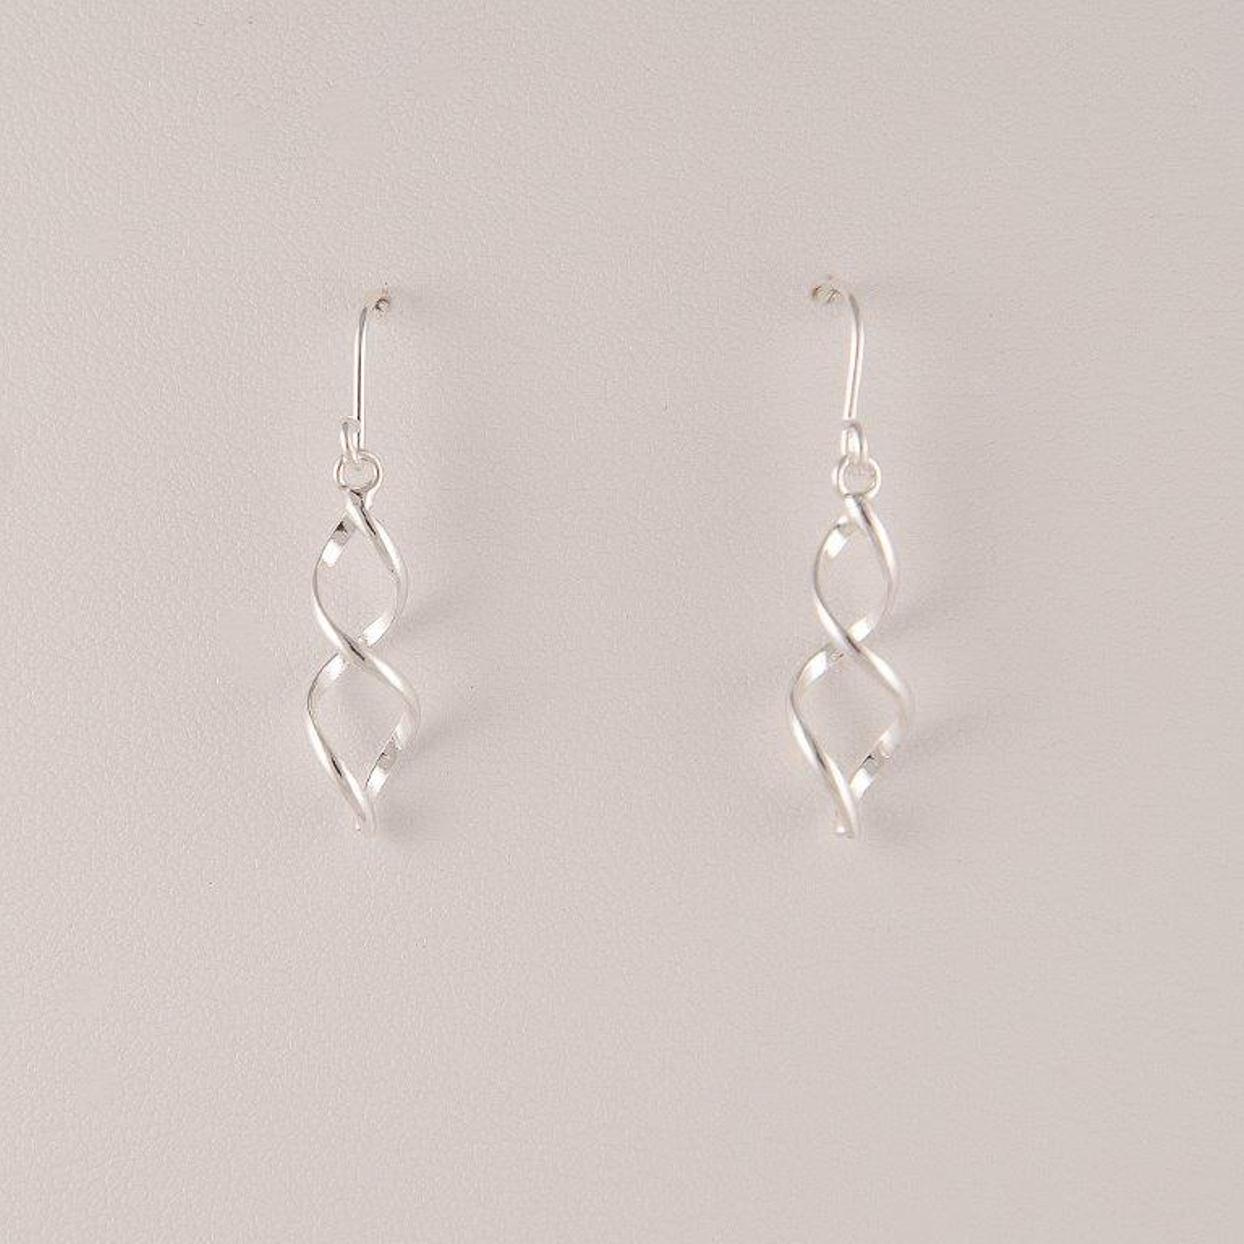 Pure 100 Pure 100 Silver Small Squiggle Wire Drop Earring PartNumber: 04469185000P KsnValue: 6025392 MfgPartNumber: 1B1-20171